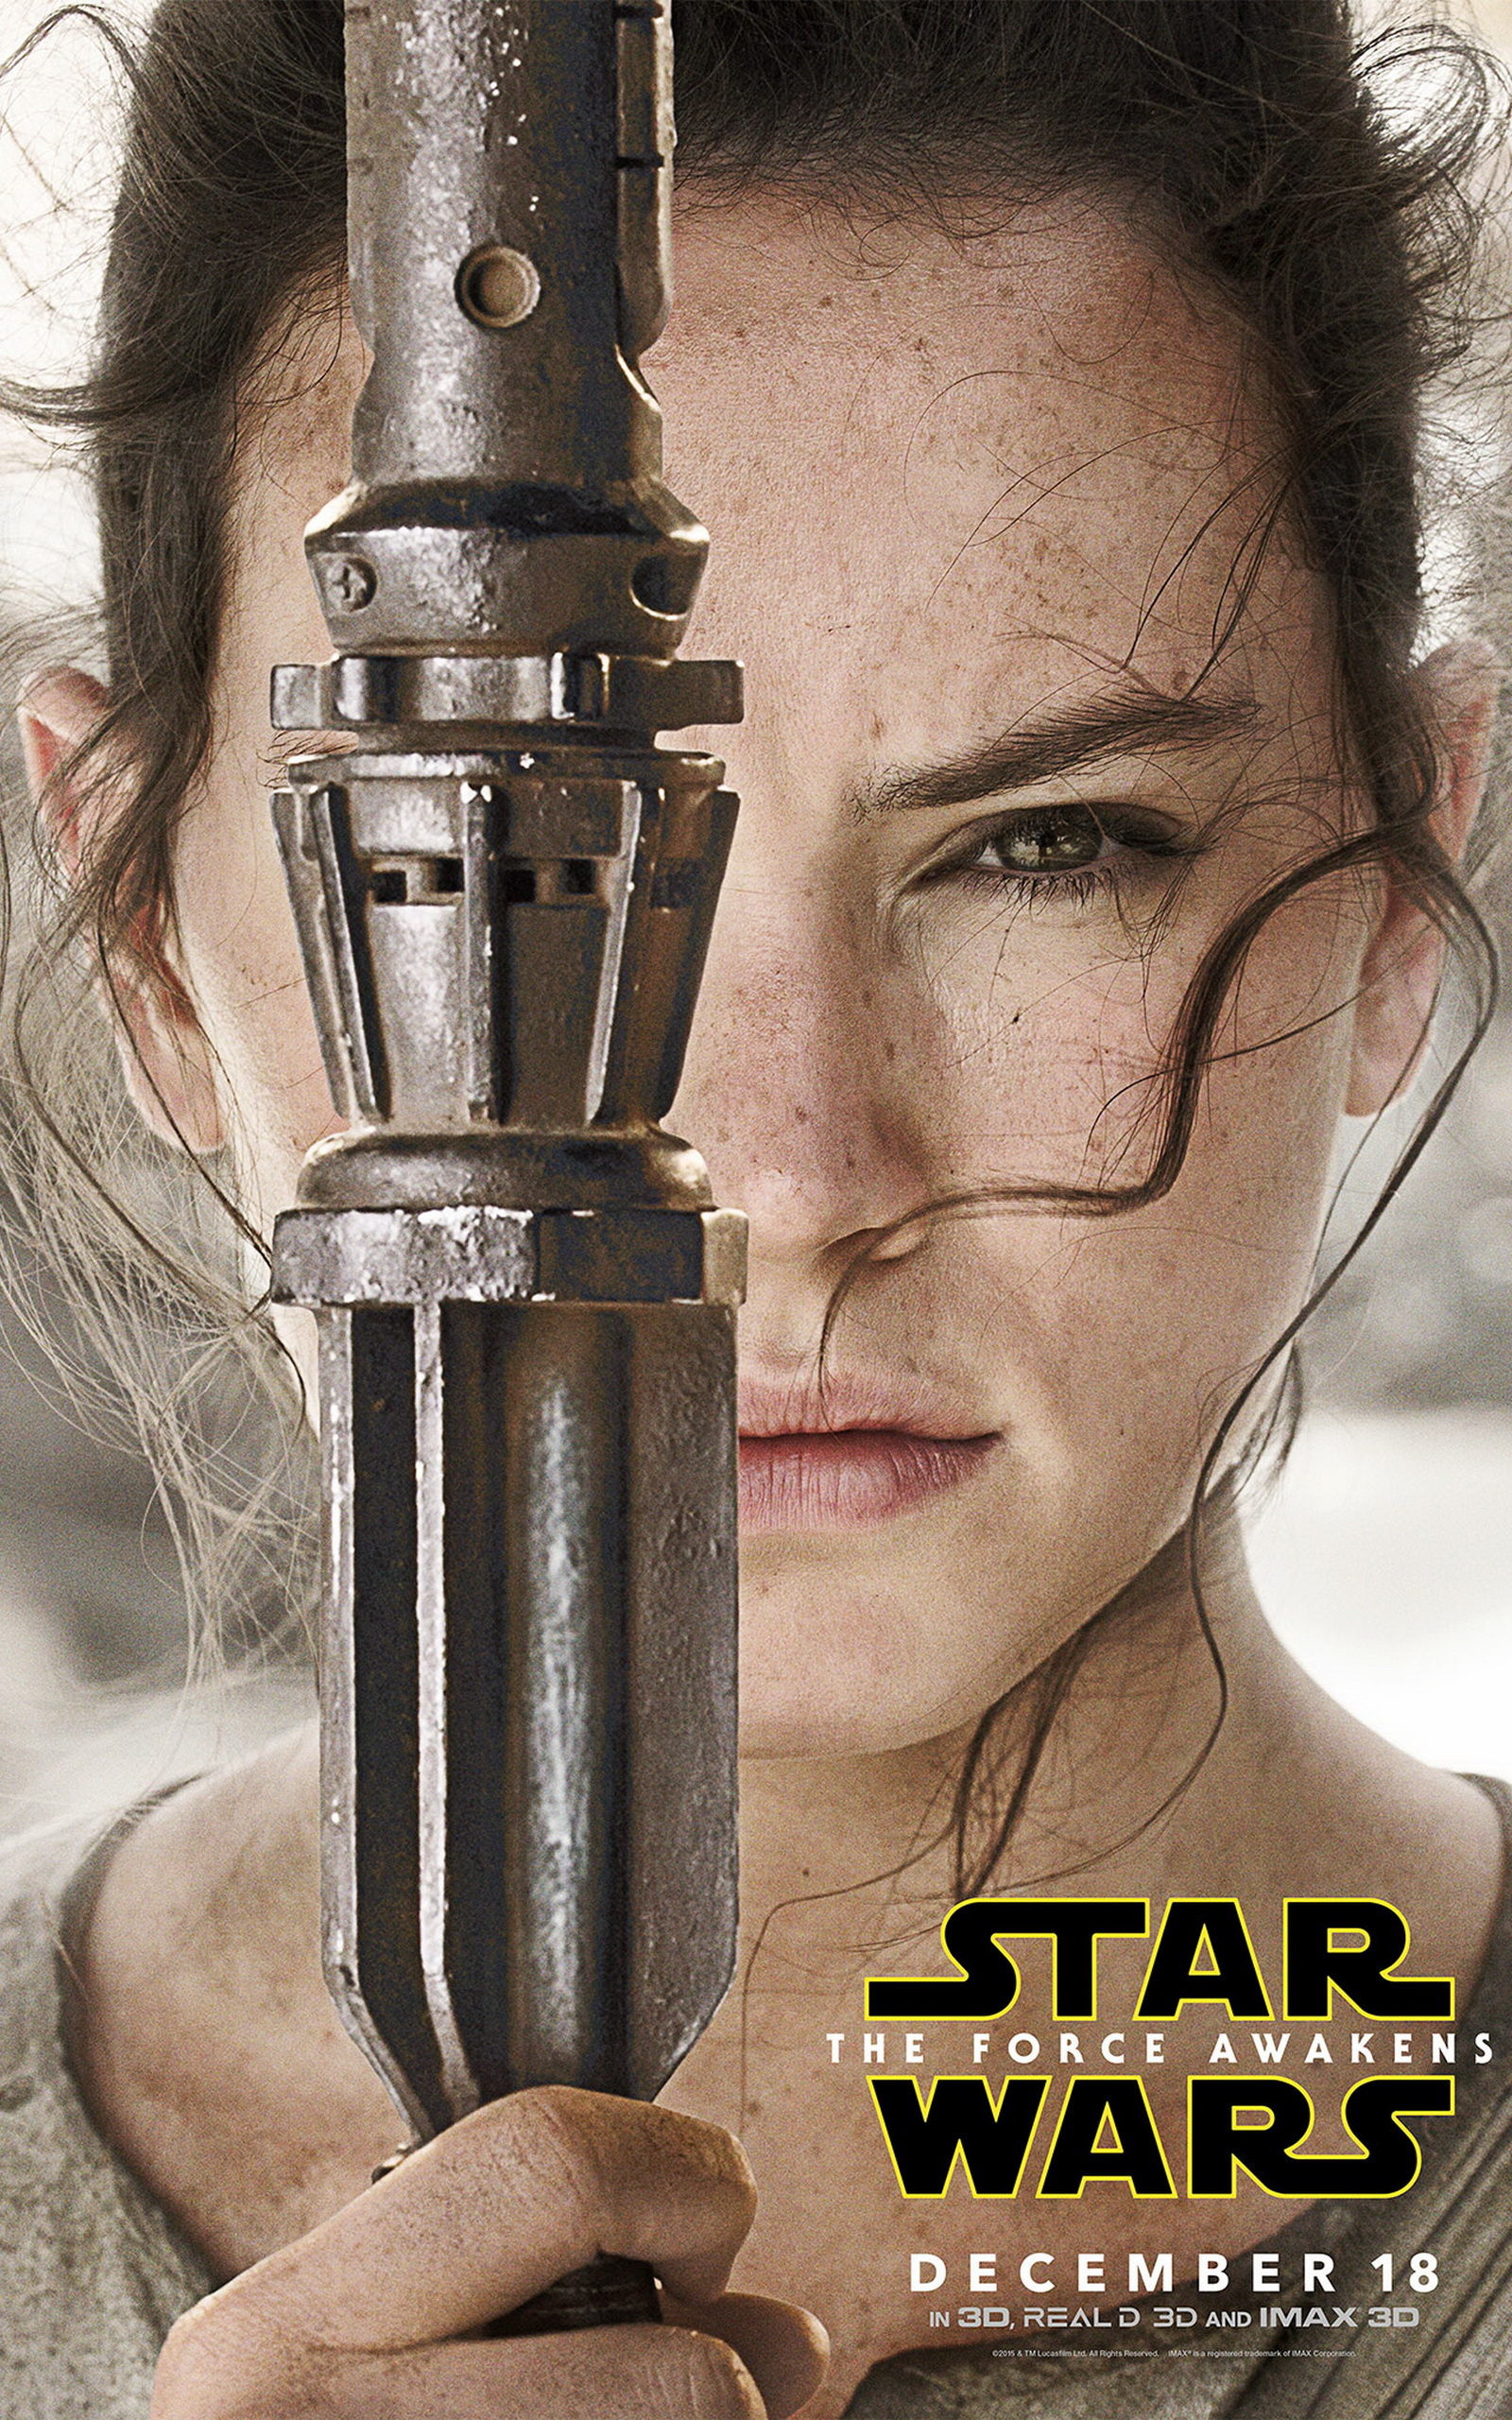 Top On A Star Wars 7 Rey Poster 1020986 Hd Wallpaper